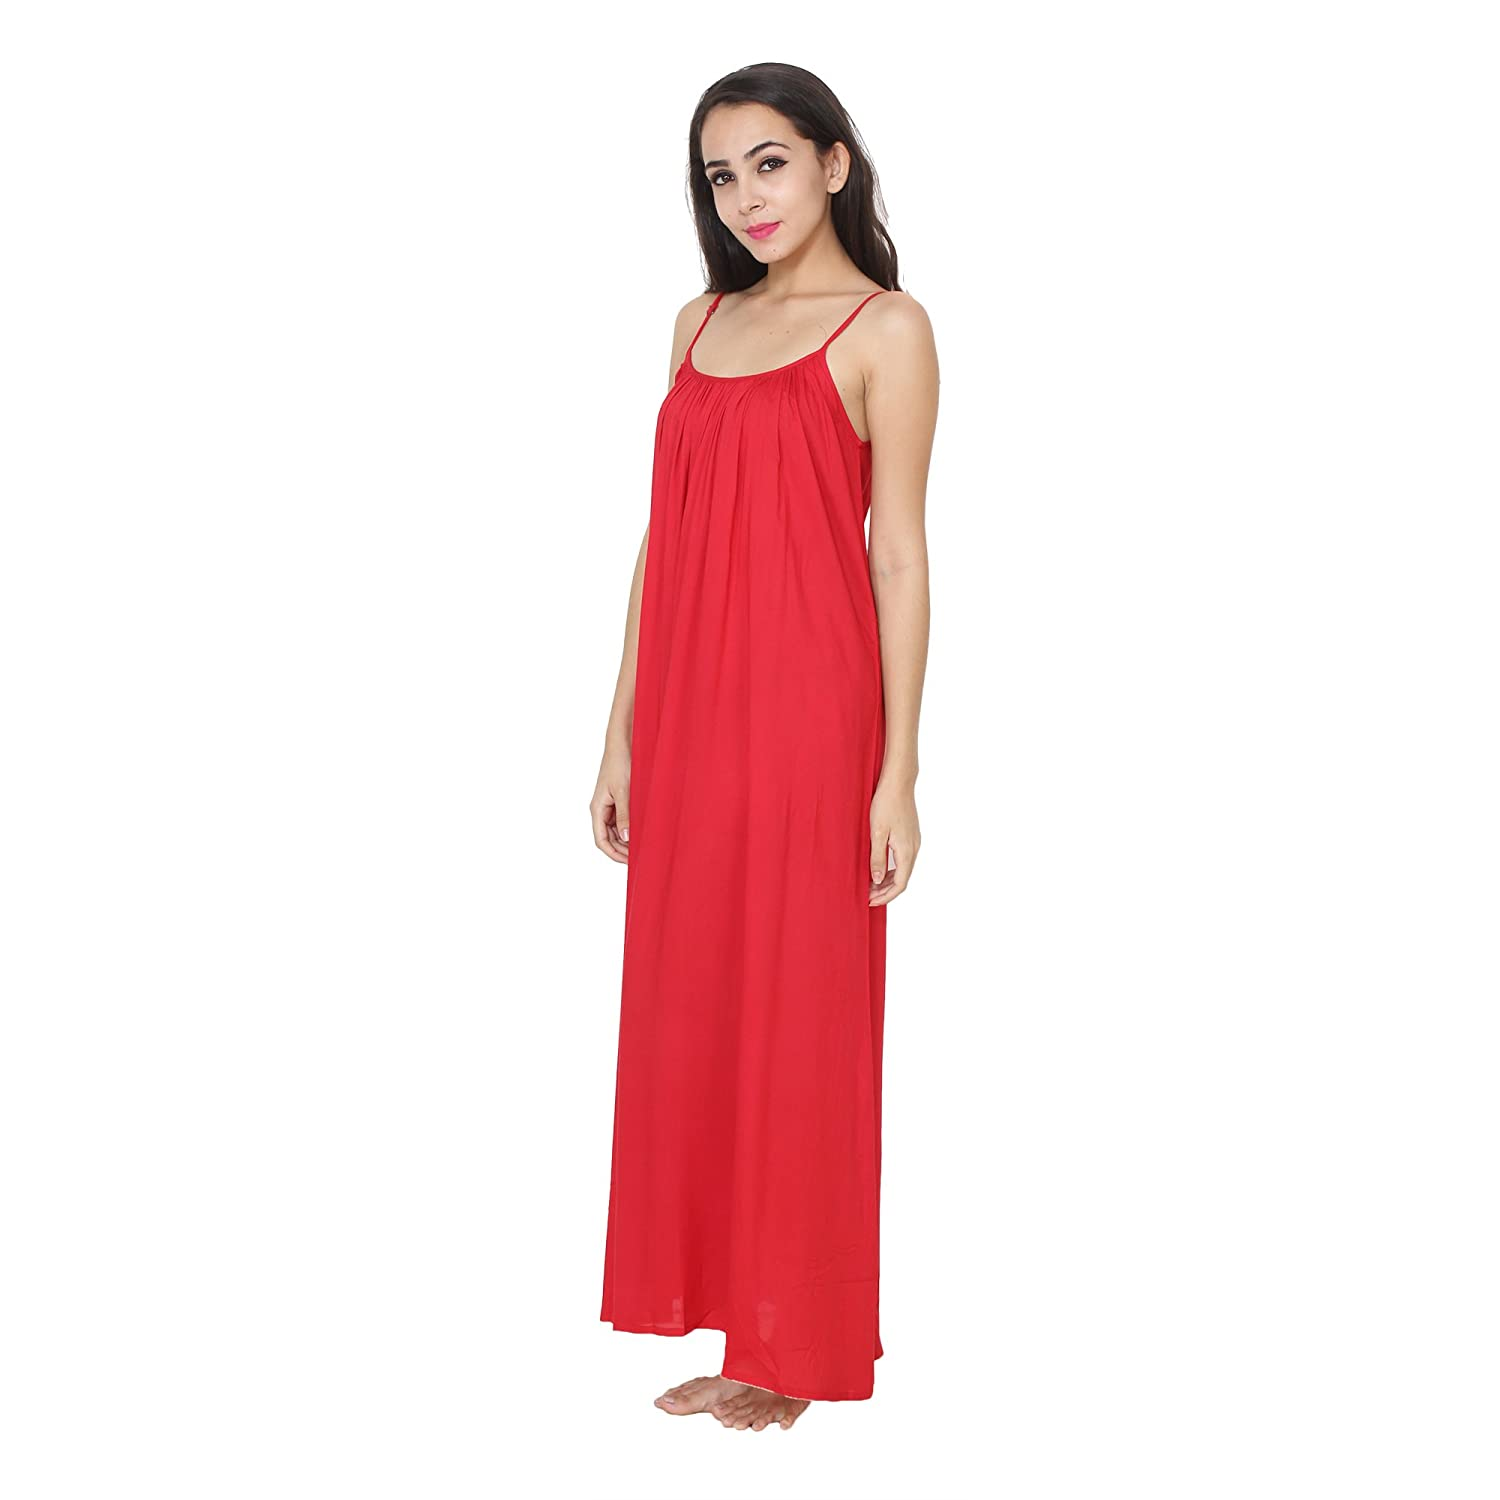 87a11a1950 Patrorna Women s A Line Nighty Night Dress with Lace Trim Robe in Red (Size  S-7XL